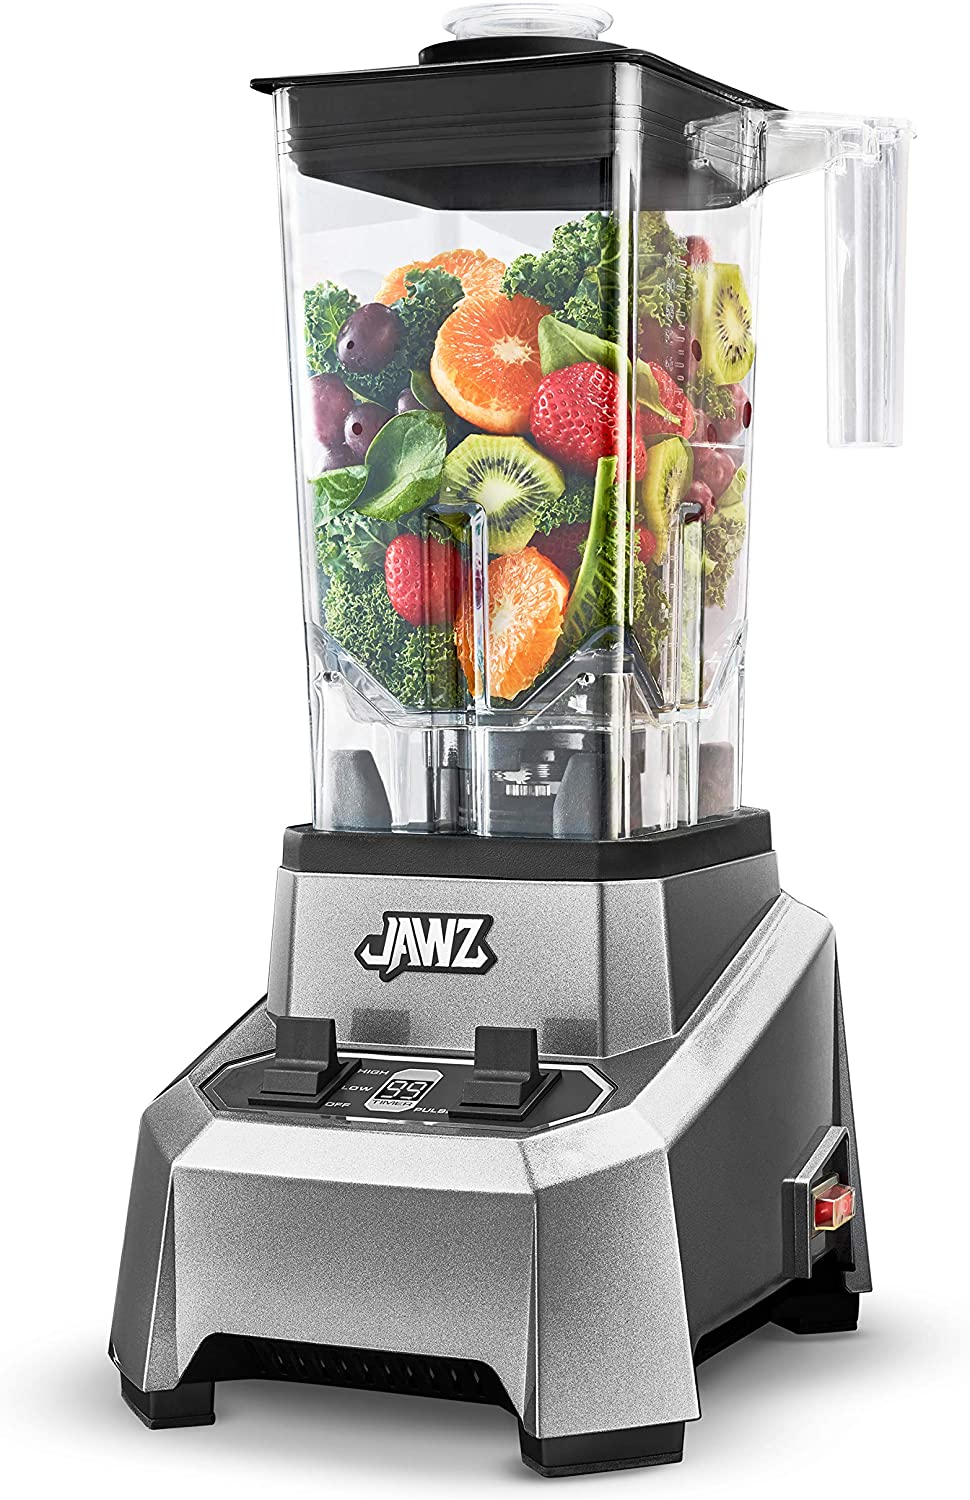 JAWZ High Performance – Toggle Switch 2-Speed – Professional Grade Countertop Blender Food Processor, 64 Oz, Silver